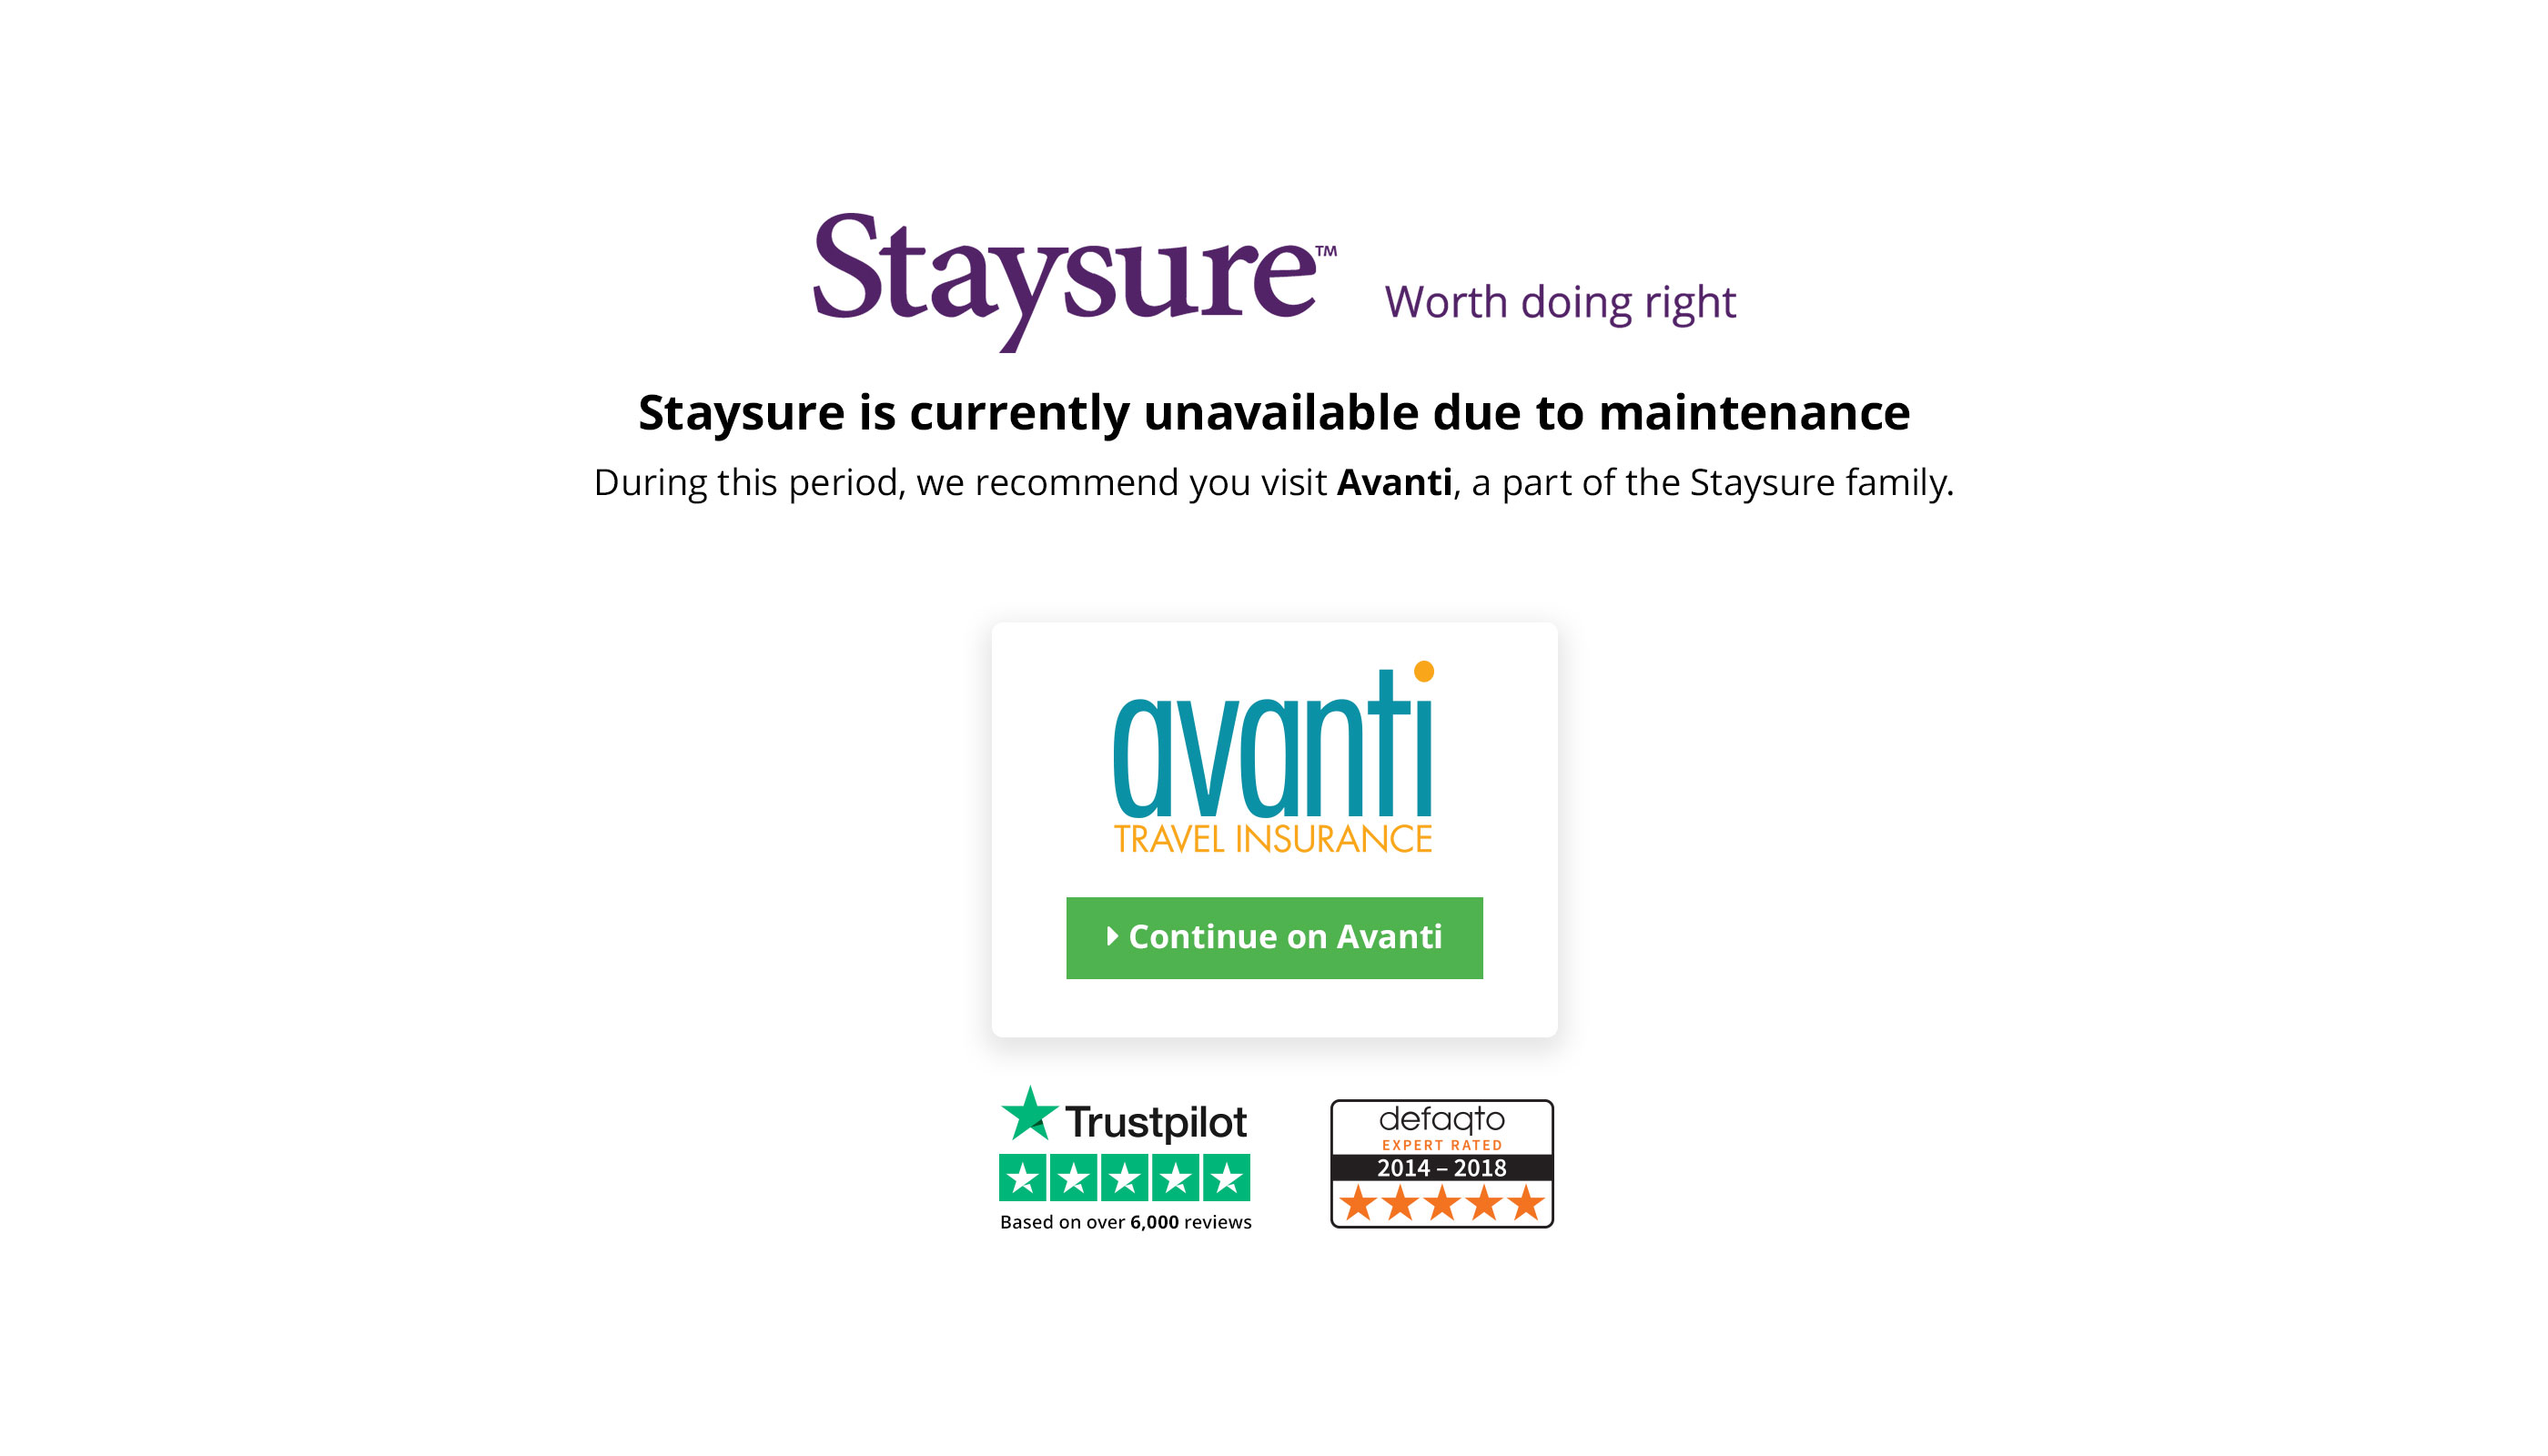 Staysure is currenlty unavailable